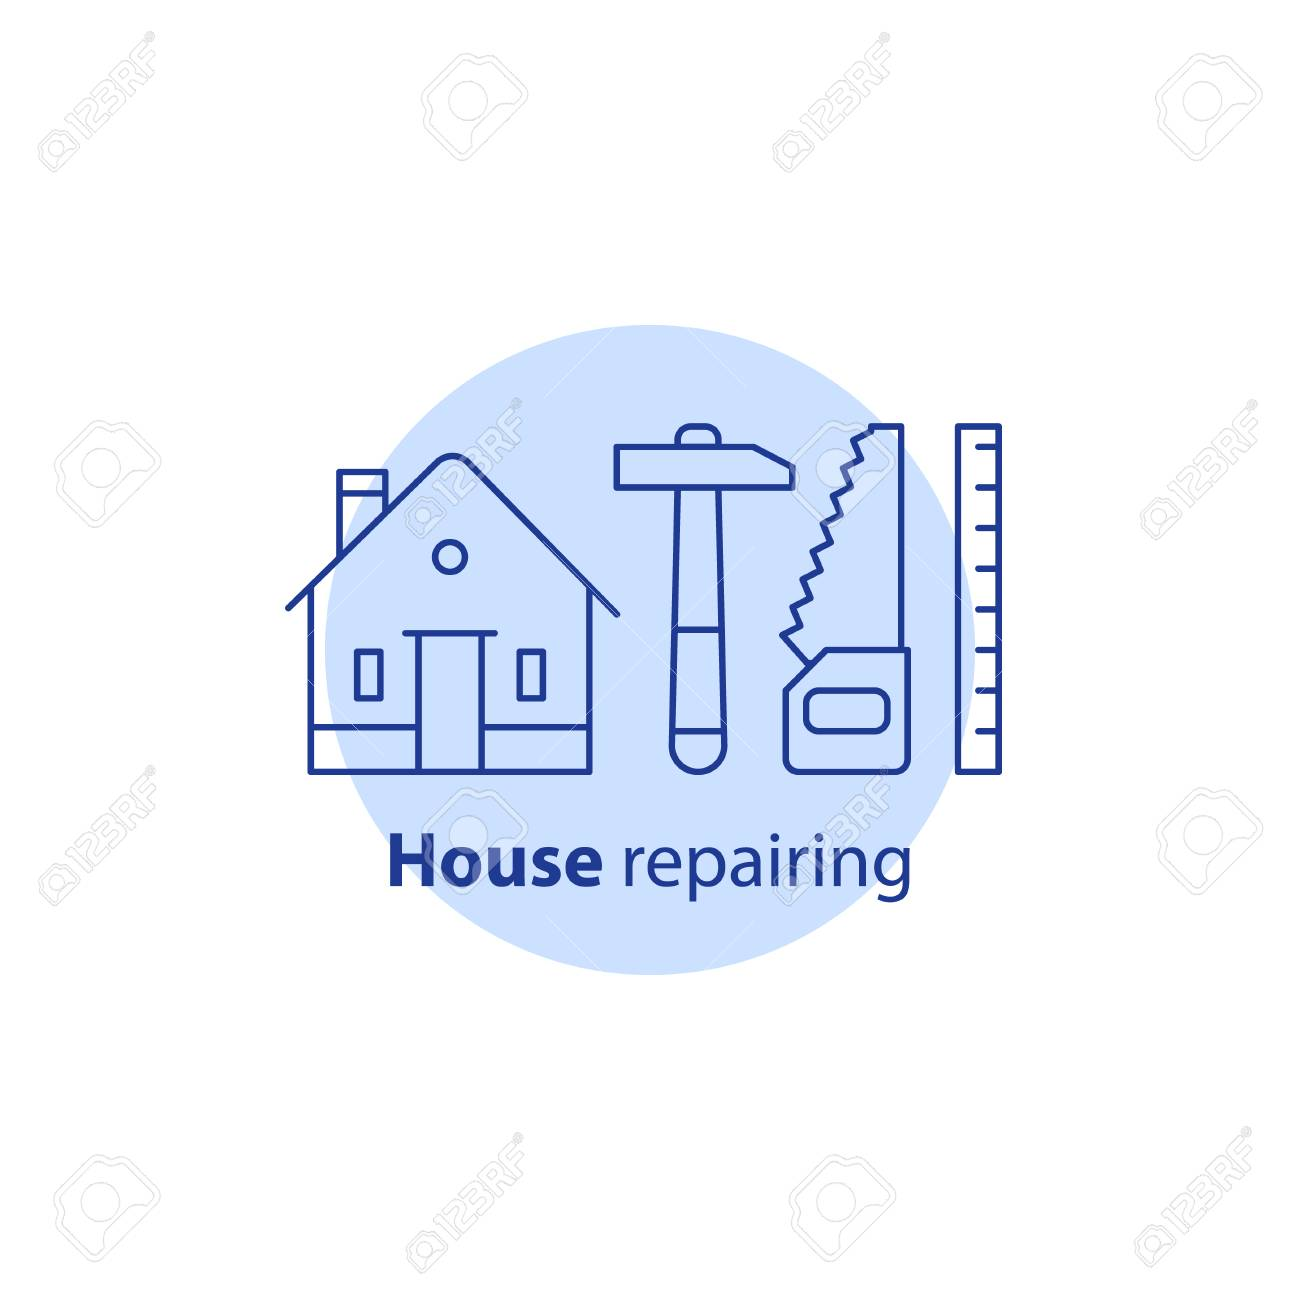 House Repair Services Carpenter Concept Home Improvement And Royalty Free Cliparts Vectors And Stock Illustration Image 93820984